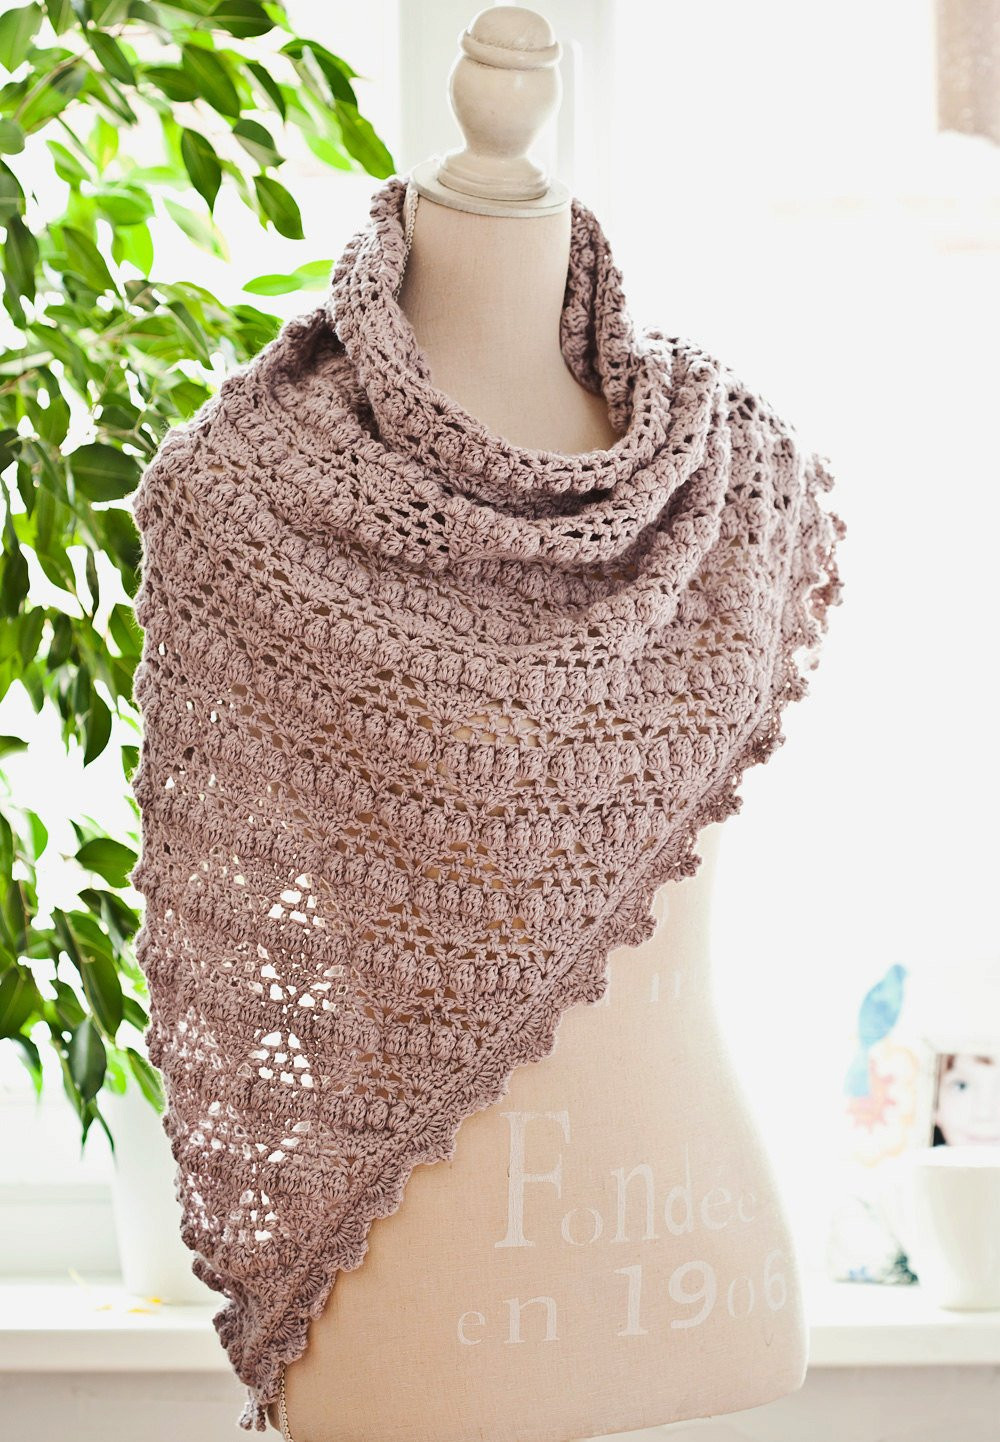 Awesome Crochet Pattern Grape Shawl From Monpetitviolon On Etsy Crochet A Shawl Of Beautiful Cornflower Blue Free Crochet Pattern Crochet A Shawl